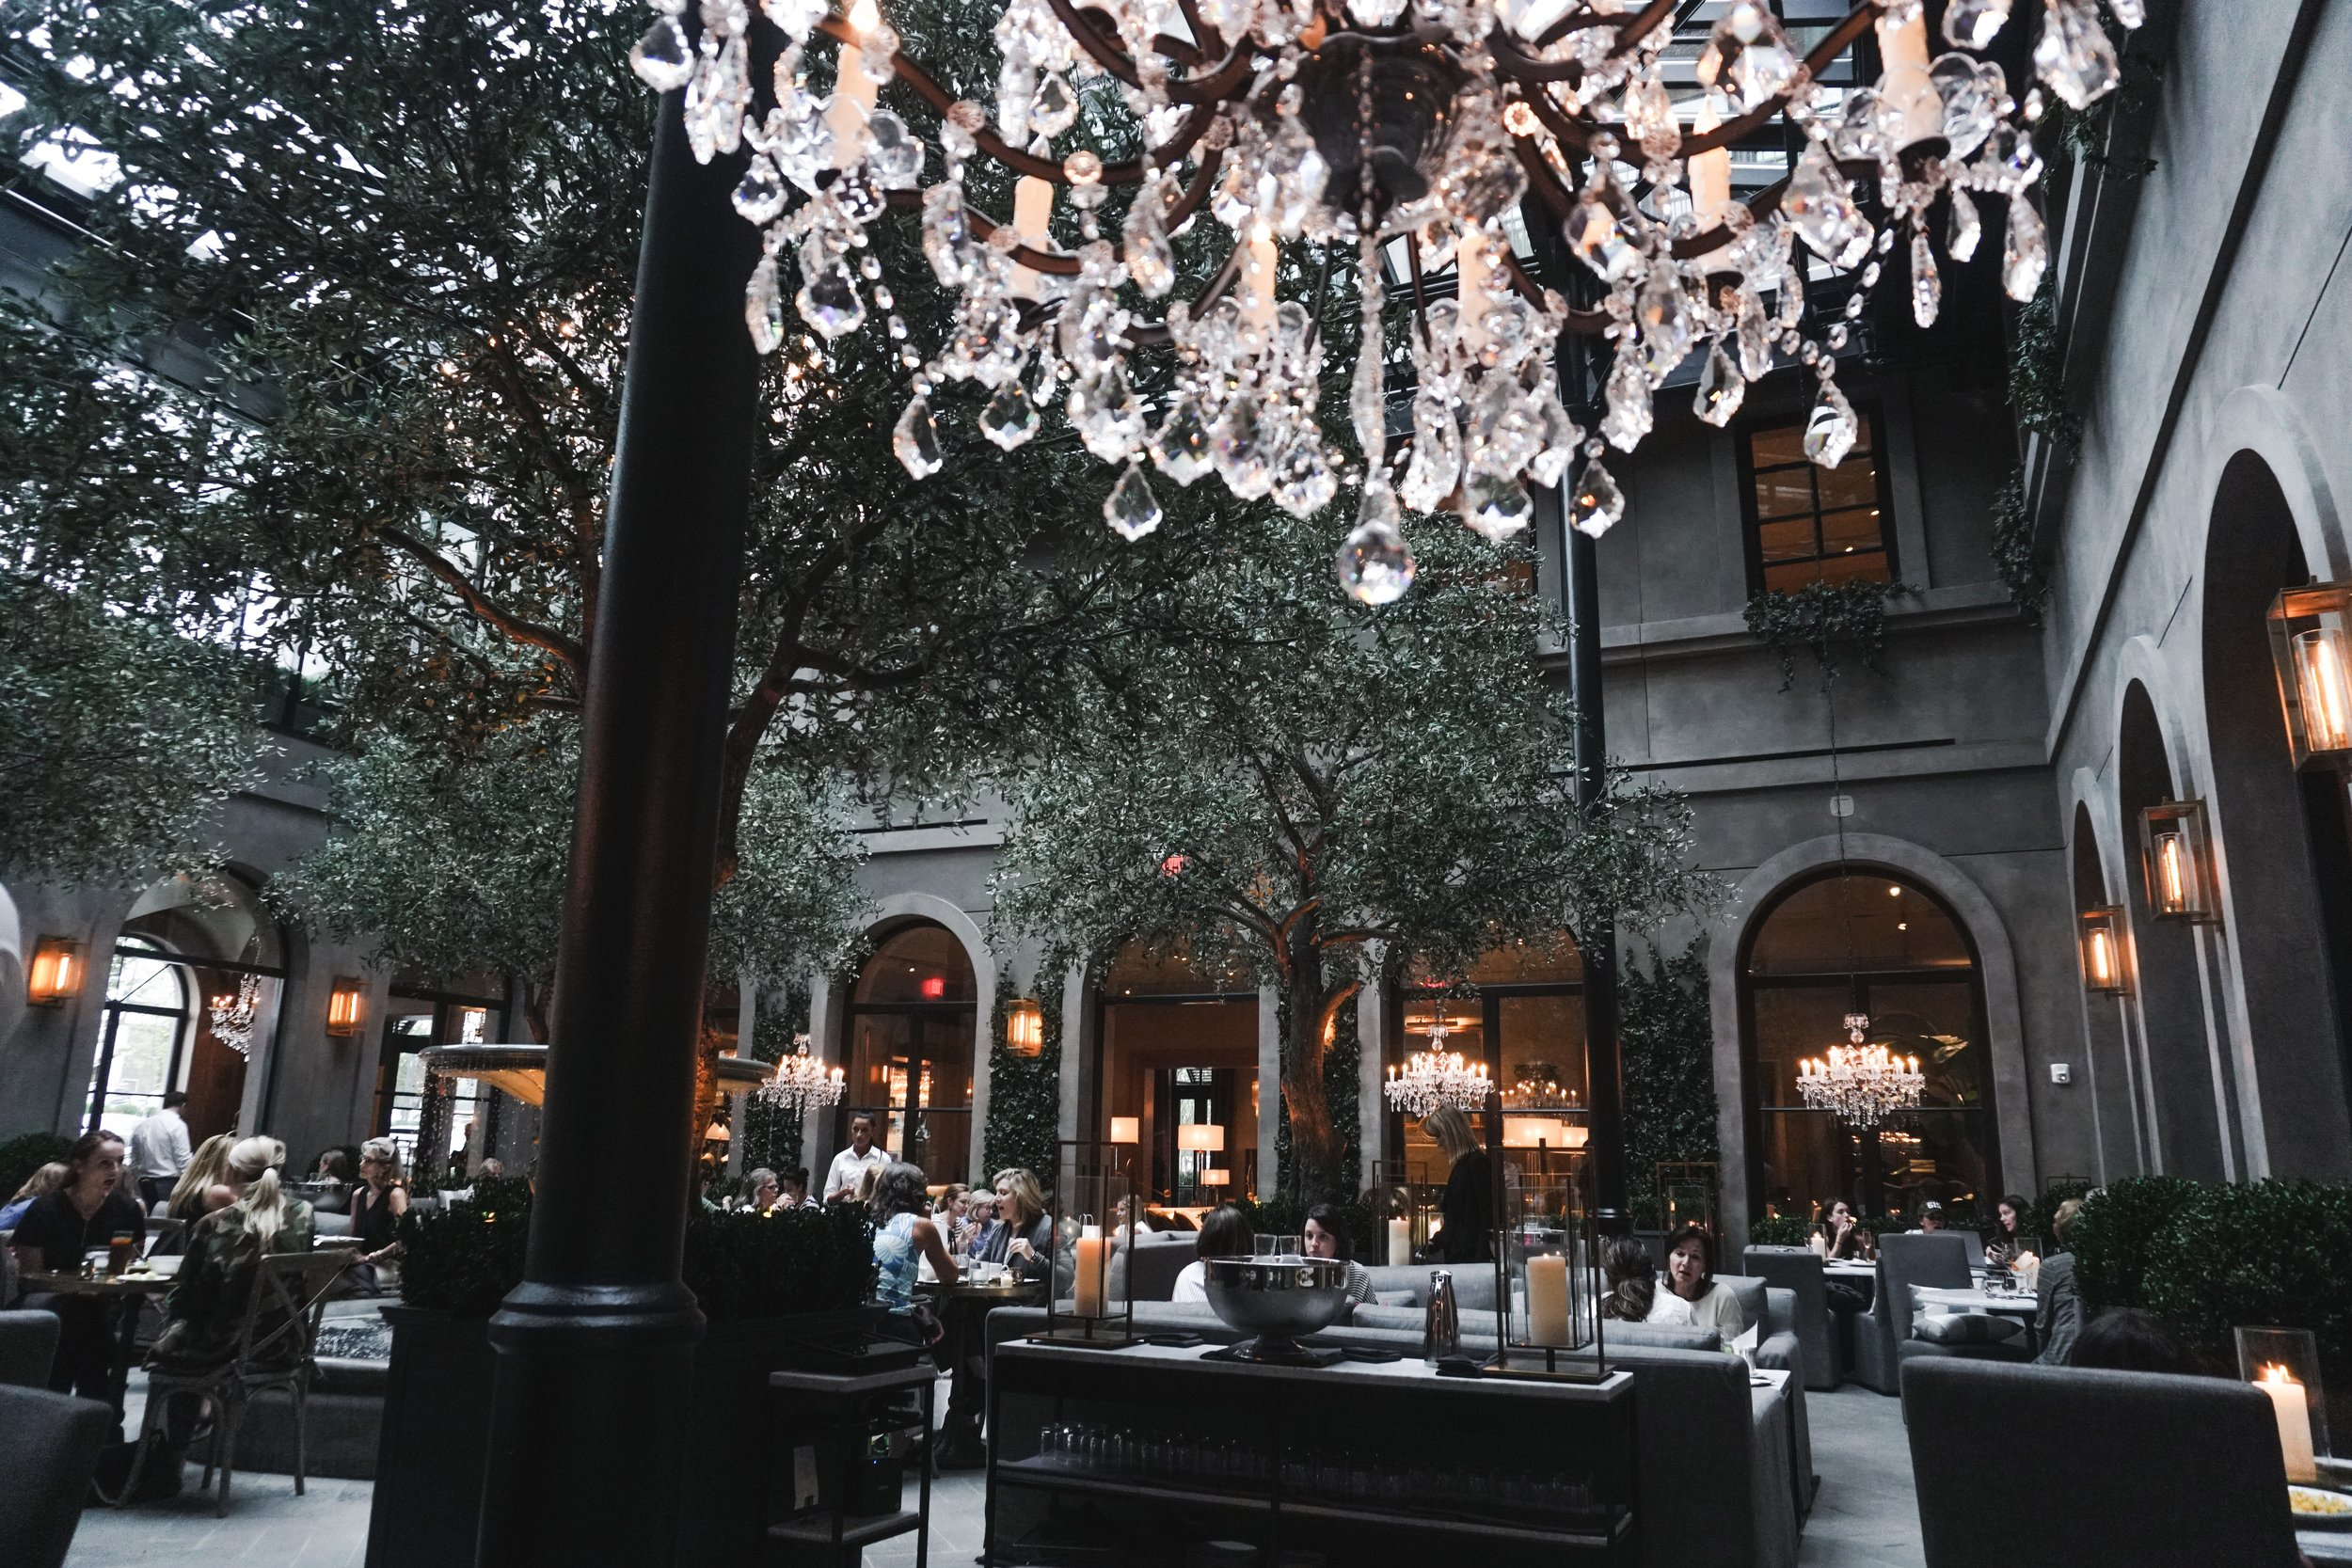 restoration-hardware-cafe-nashville-tennessee.jpg